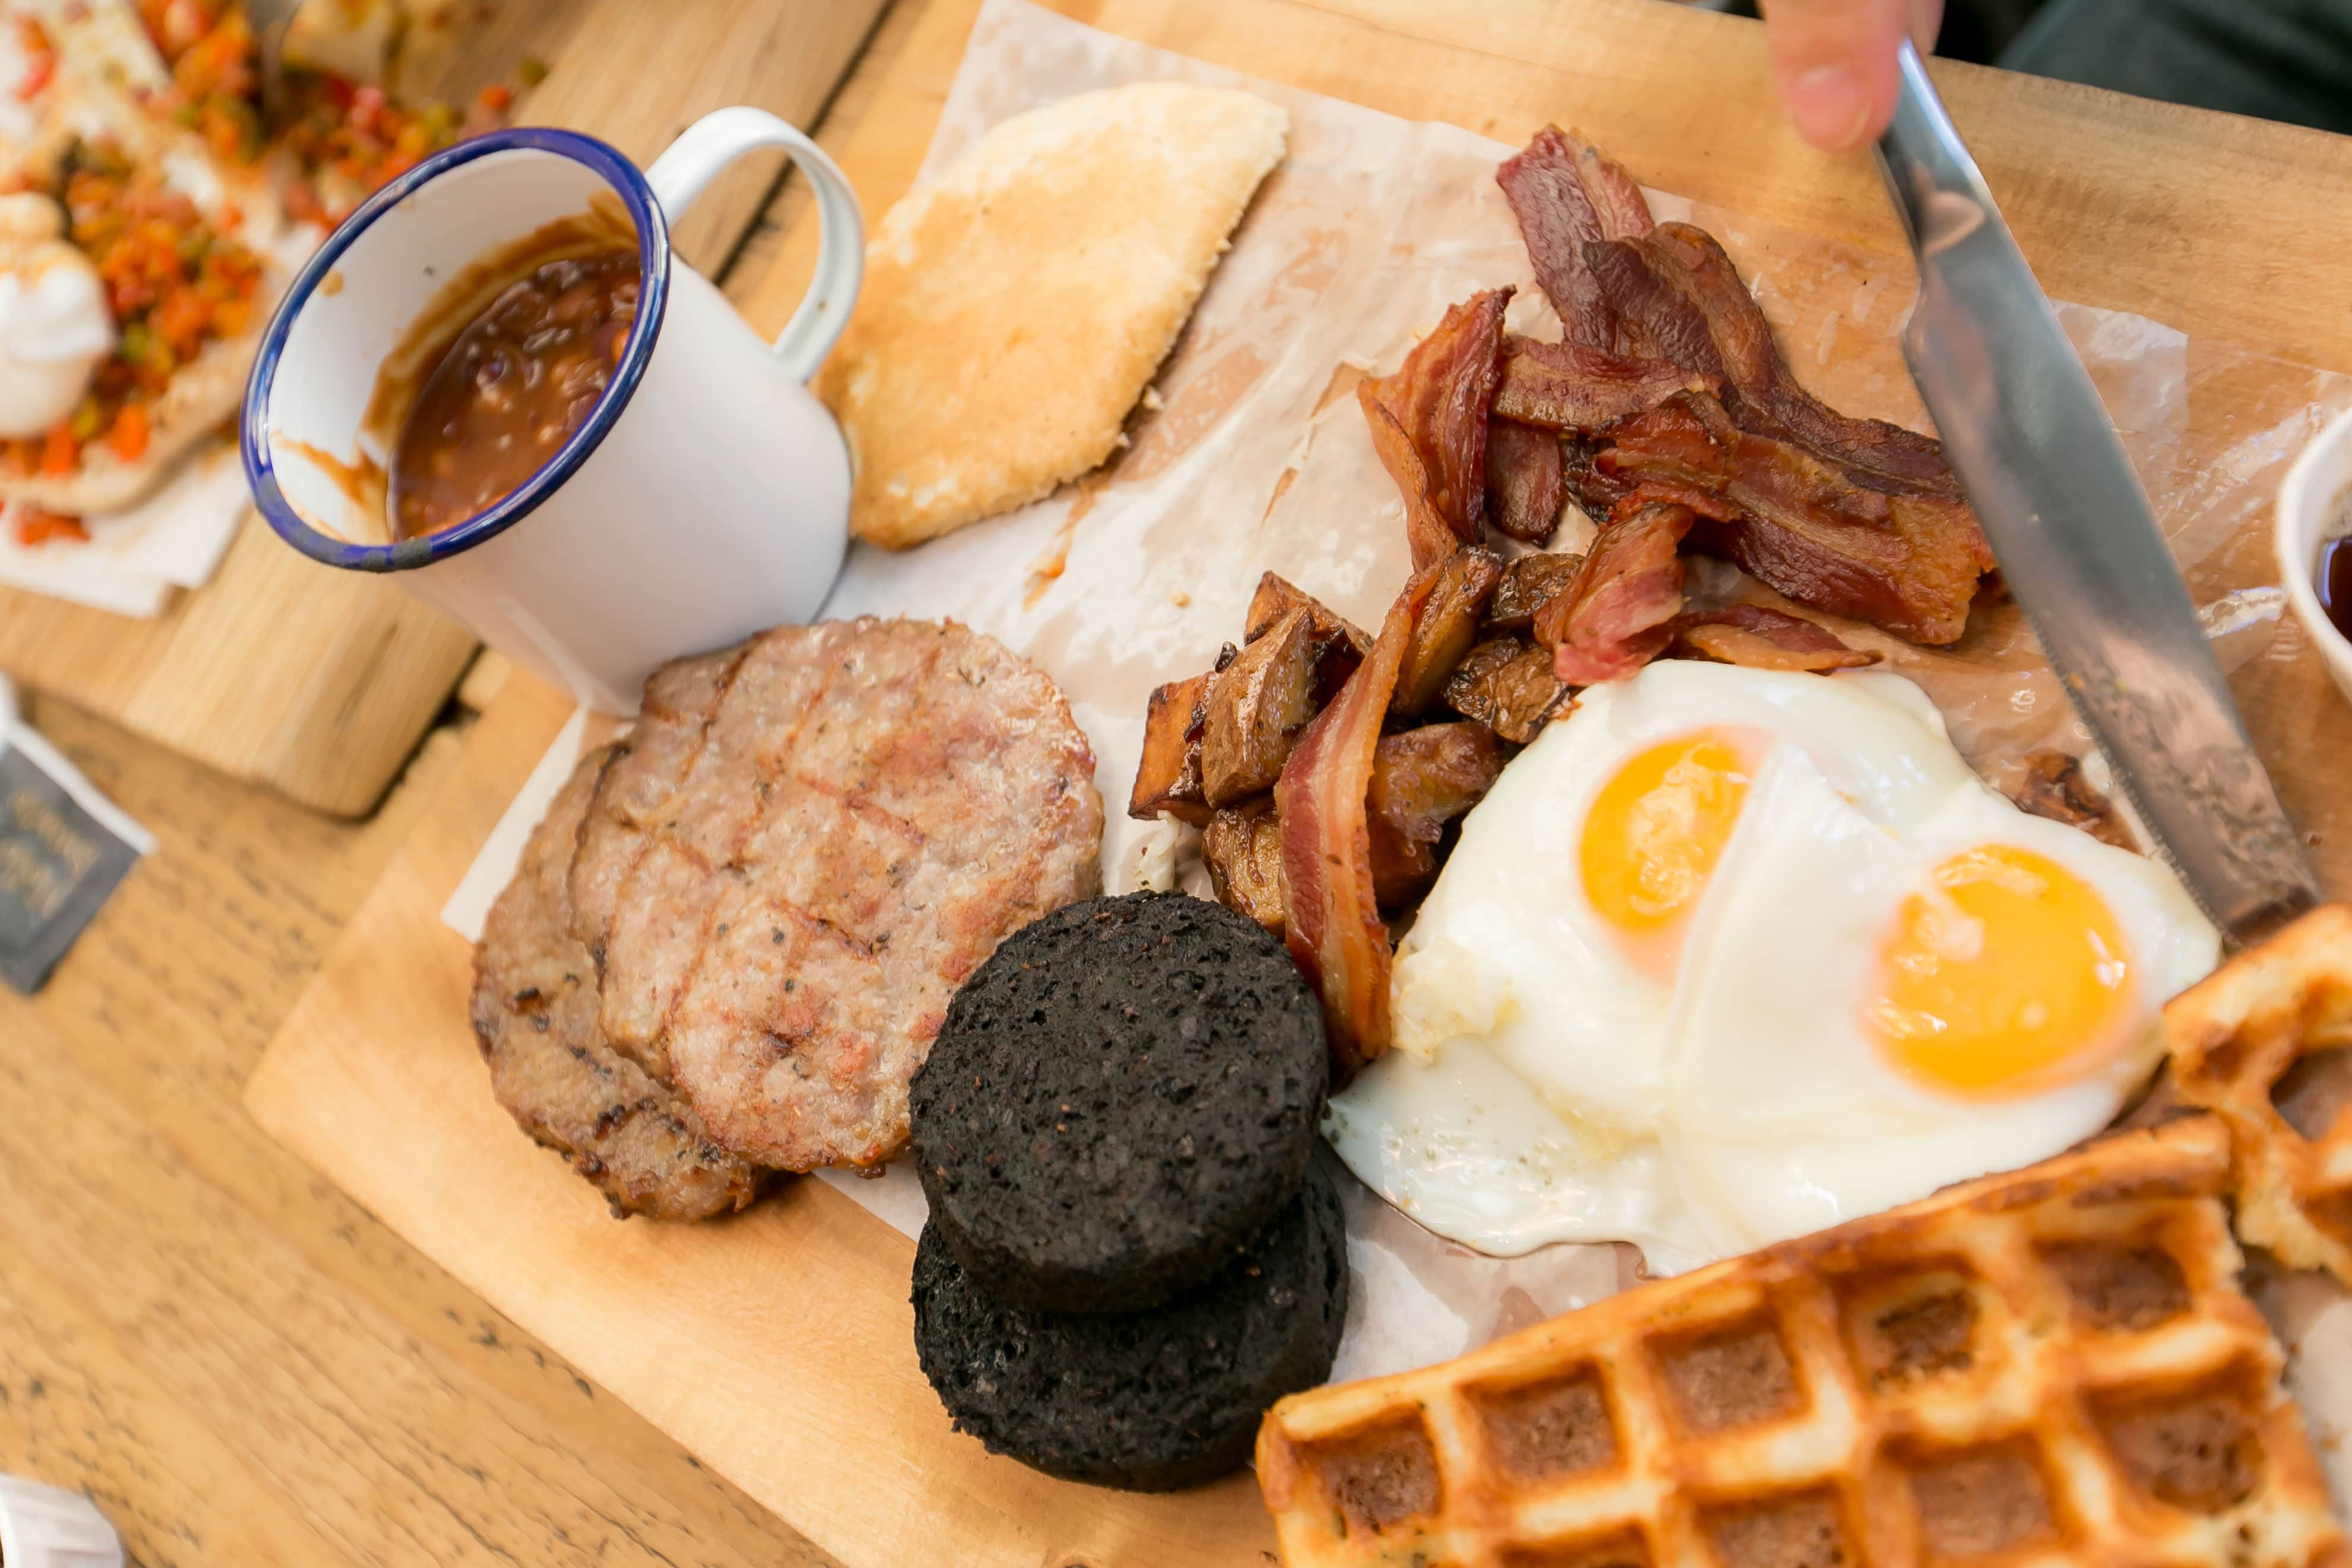 The All In breakfast, featuring bacon, black pudding, waffle, eggs, potato, pancakes and BBQ beans